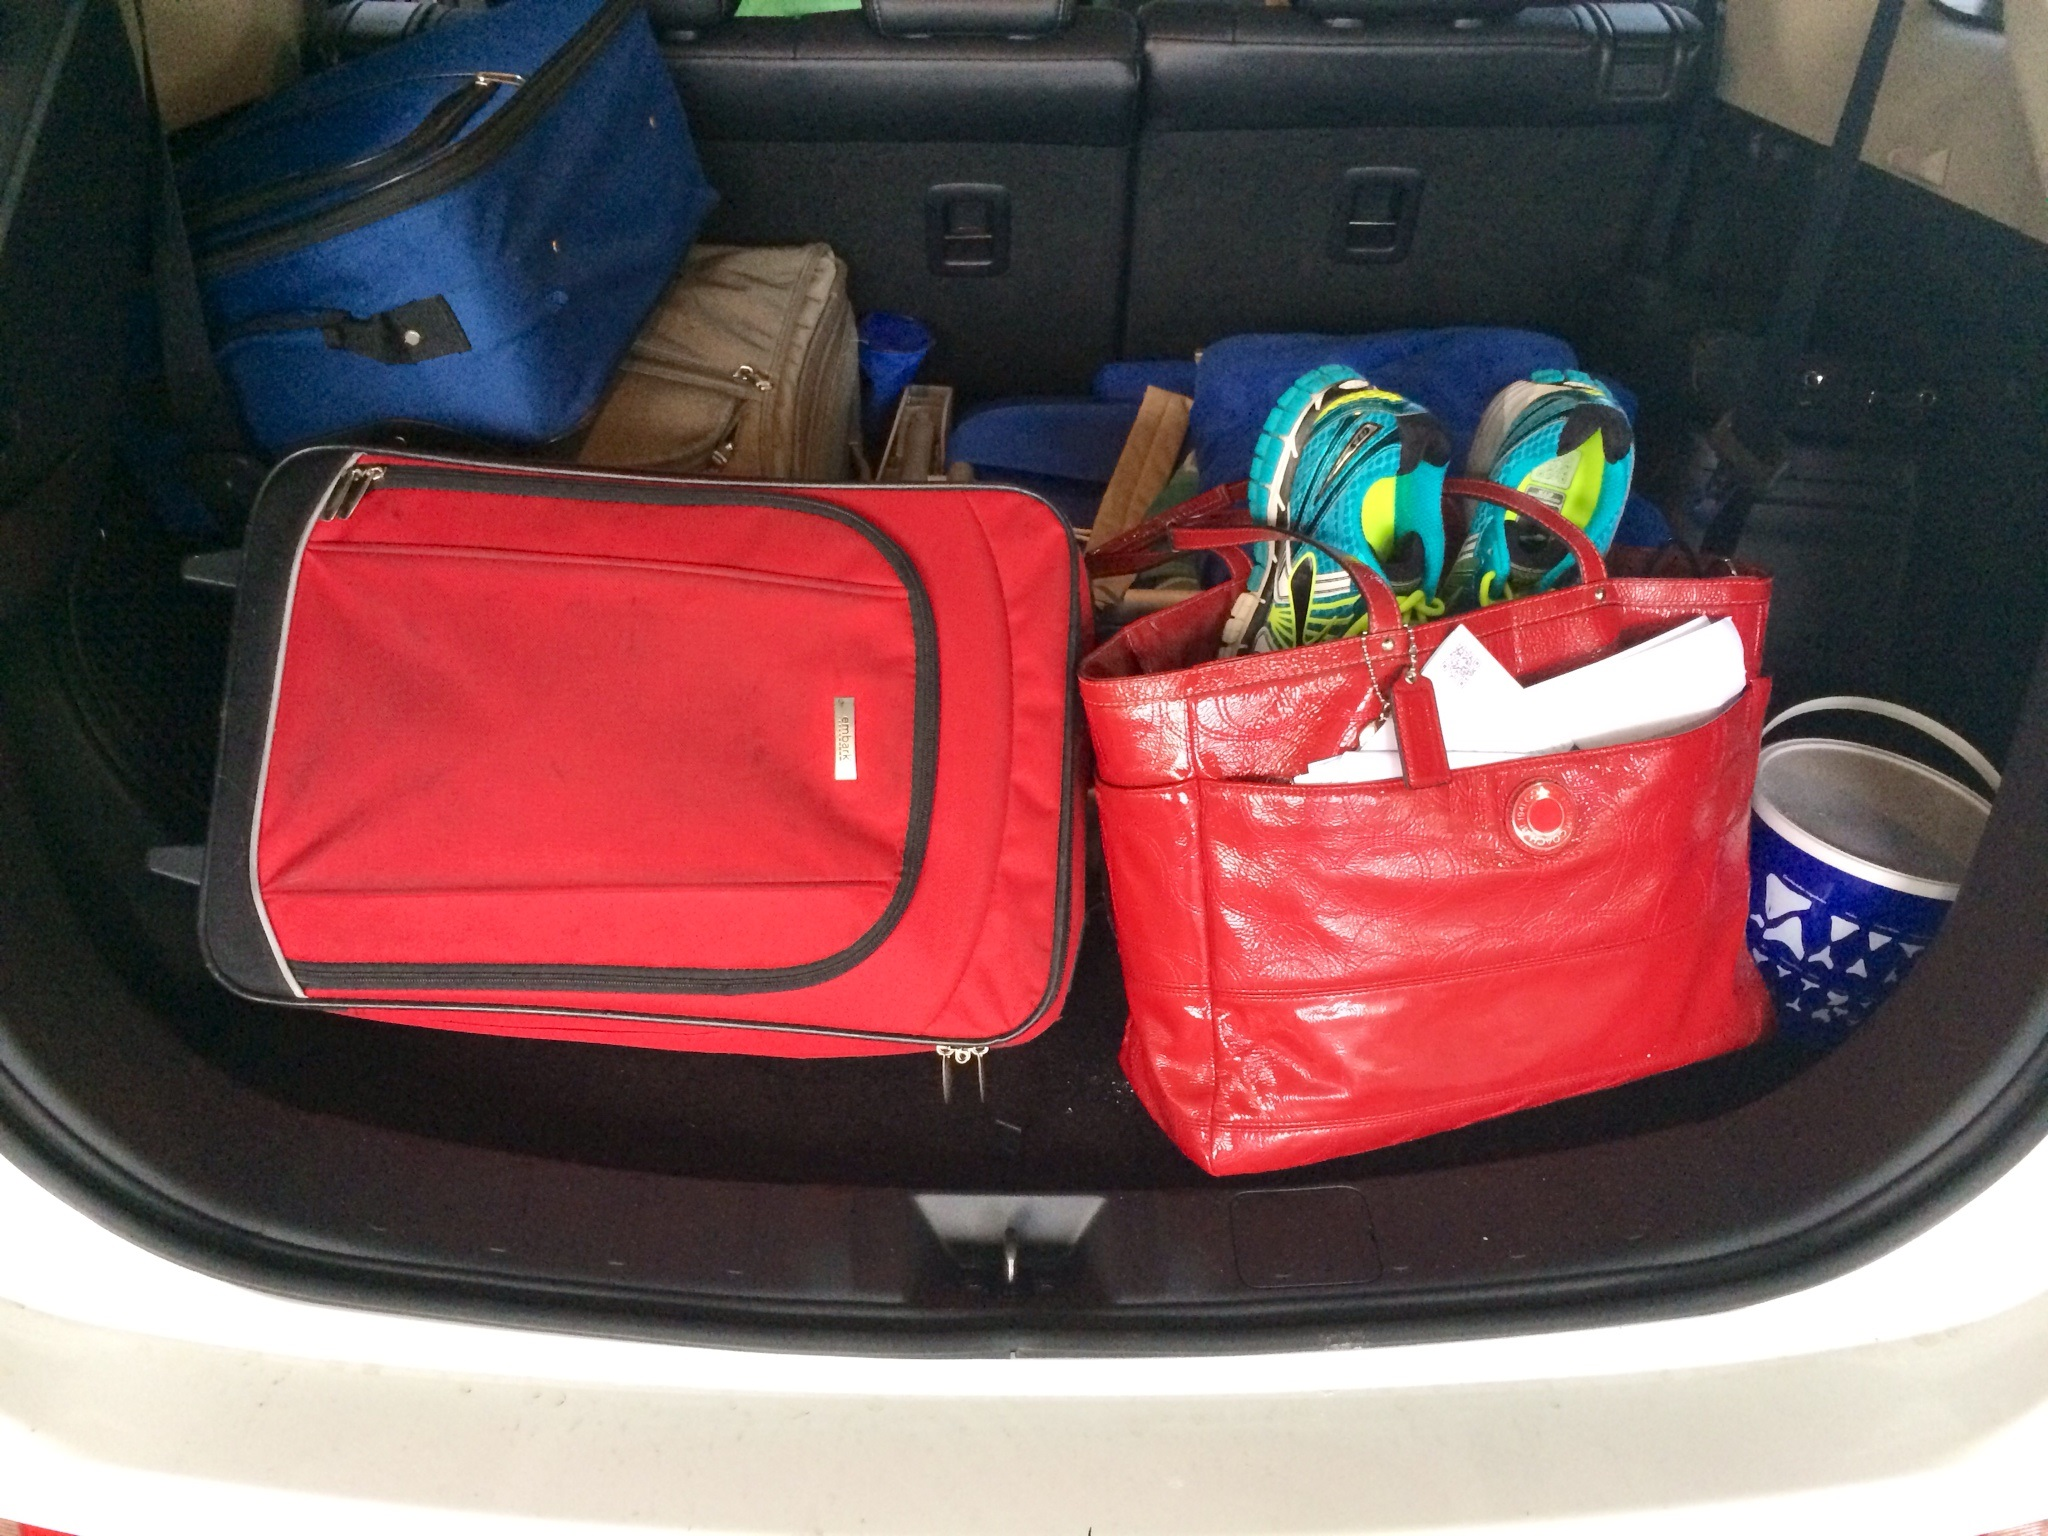 There was plenty of space for all of our gear in the back of the Mitsubishi Outlander.